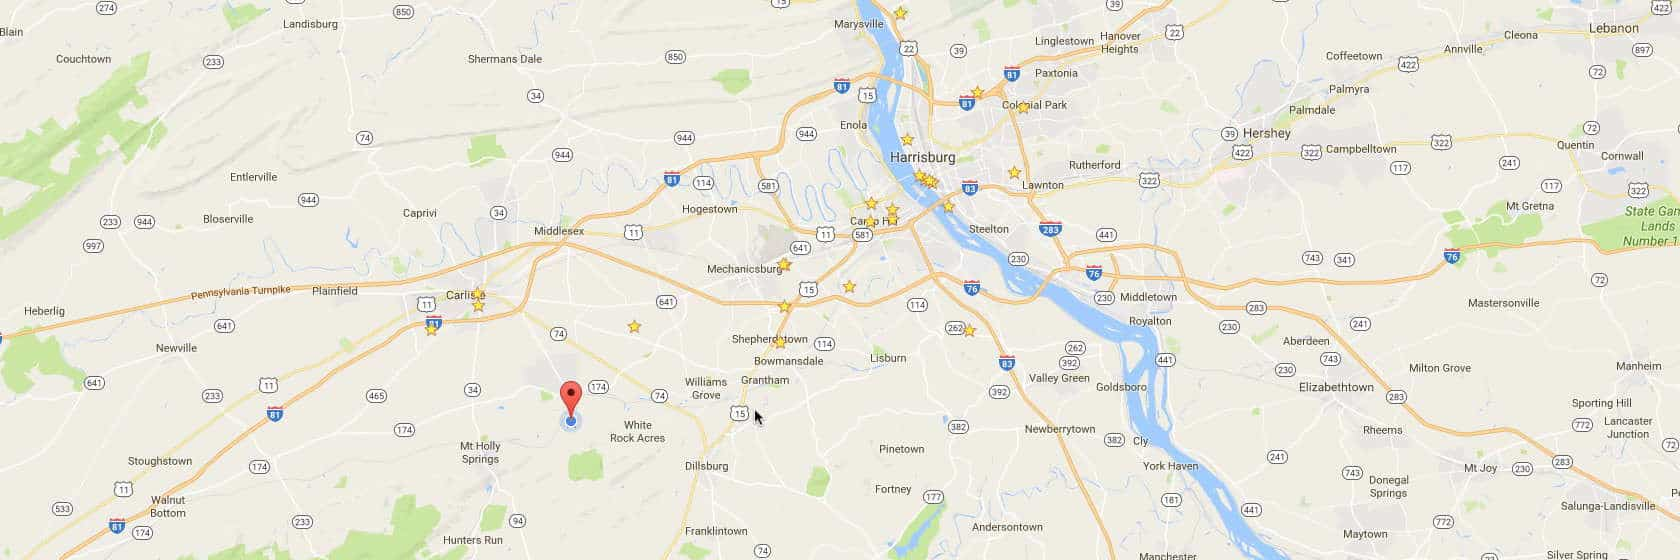 Screenshot of Google Maps showing Central Pennsylvania